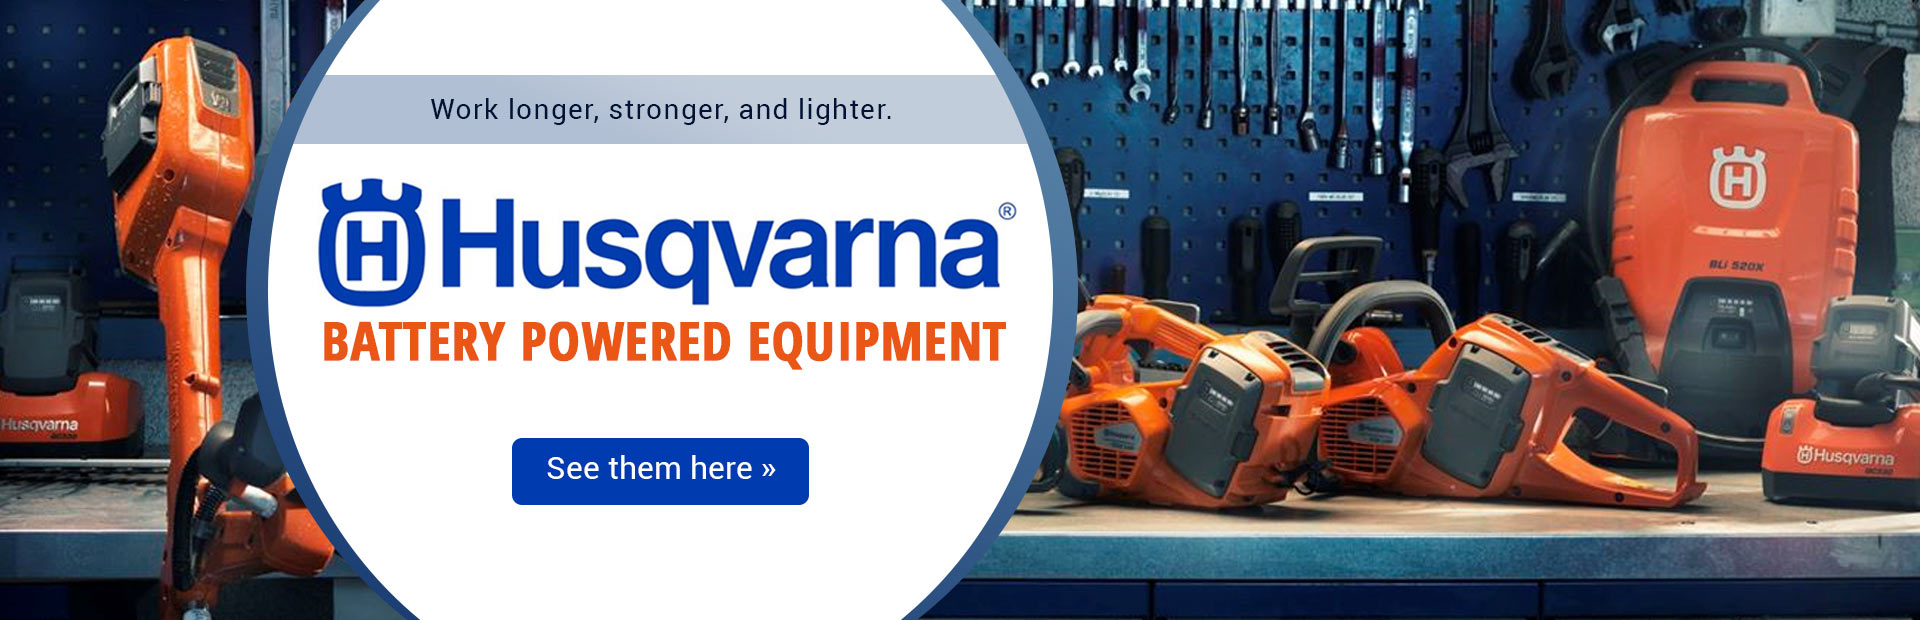 Husqvarna Battery Powered Equipment: Click here for details.